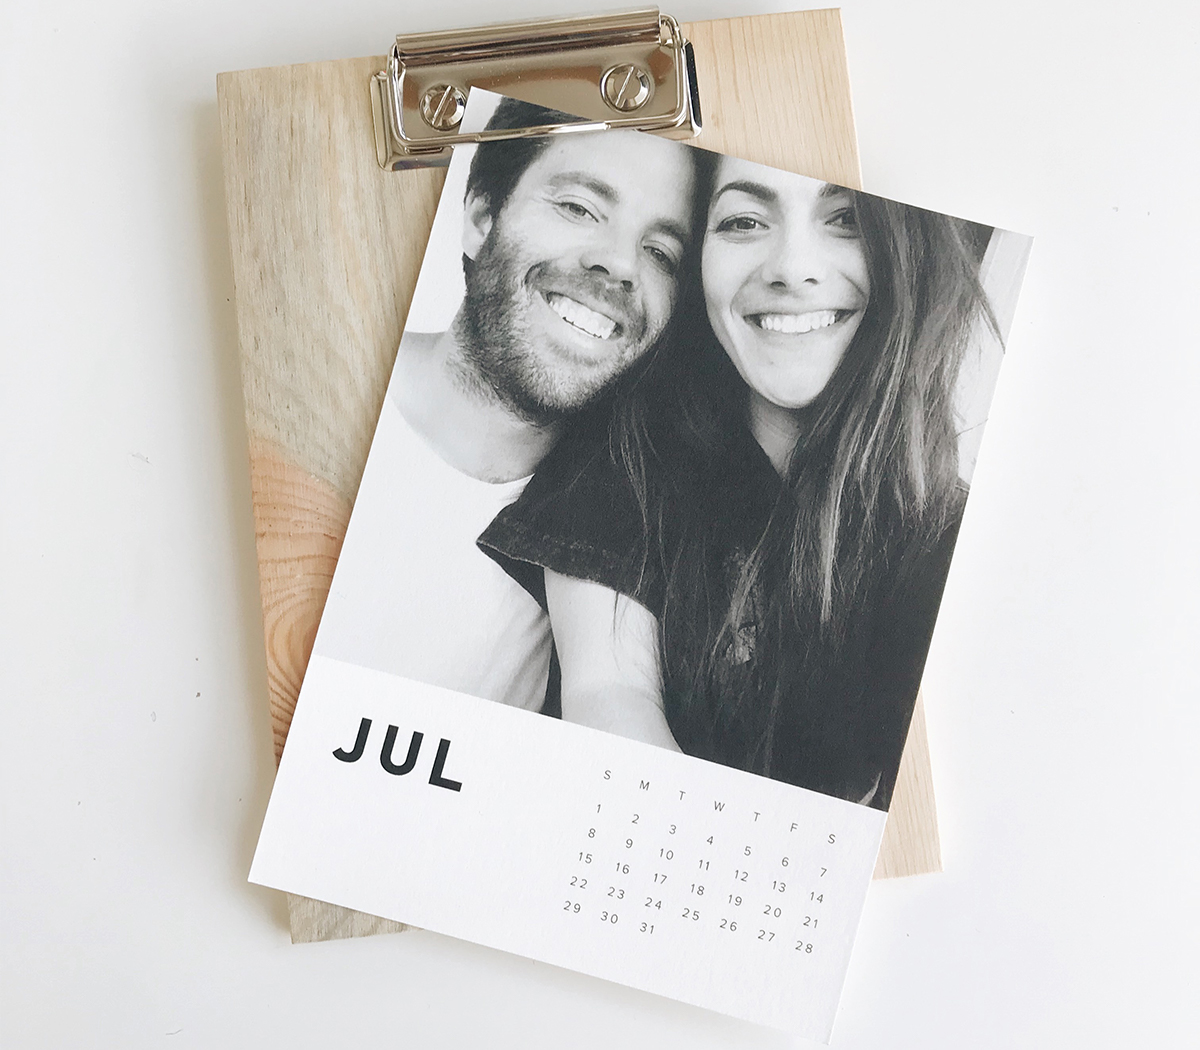 Photo by @relevantraw of Artifact Uprising wood calendar featuring print of couple